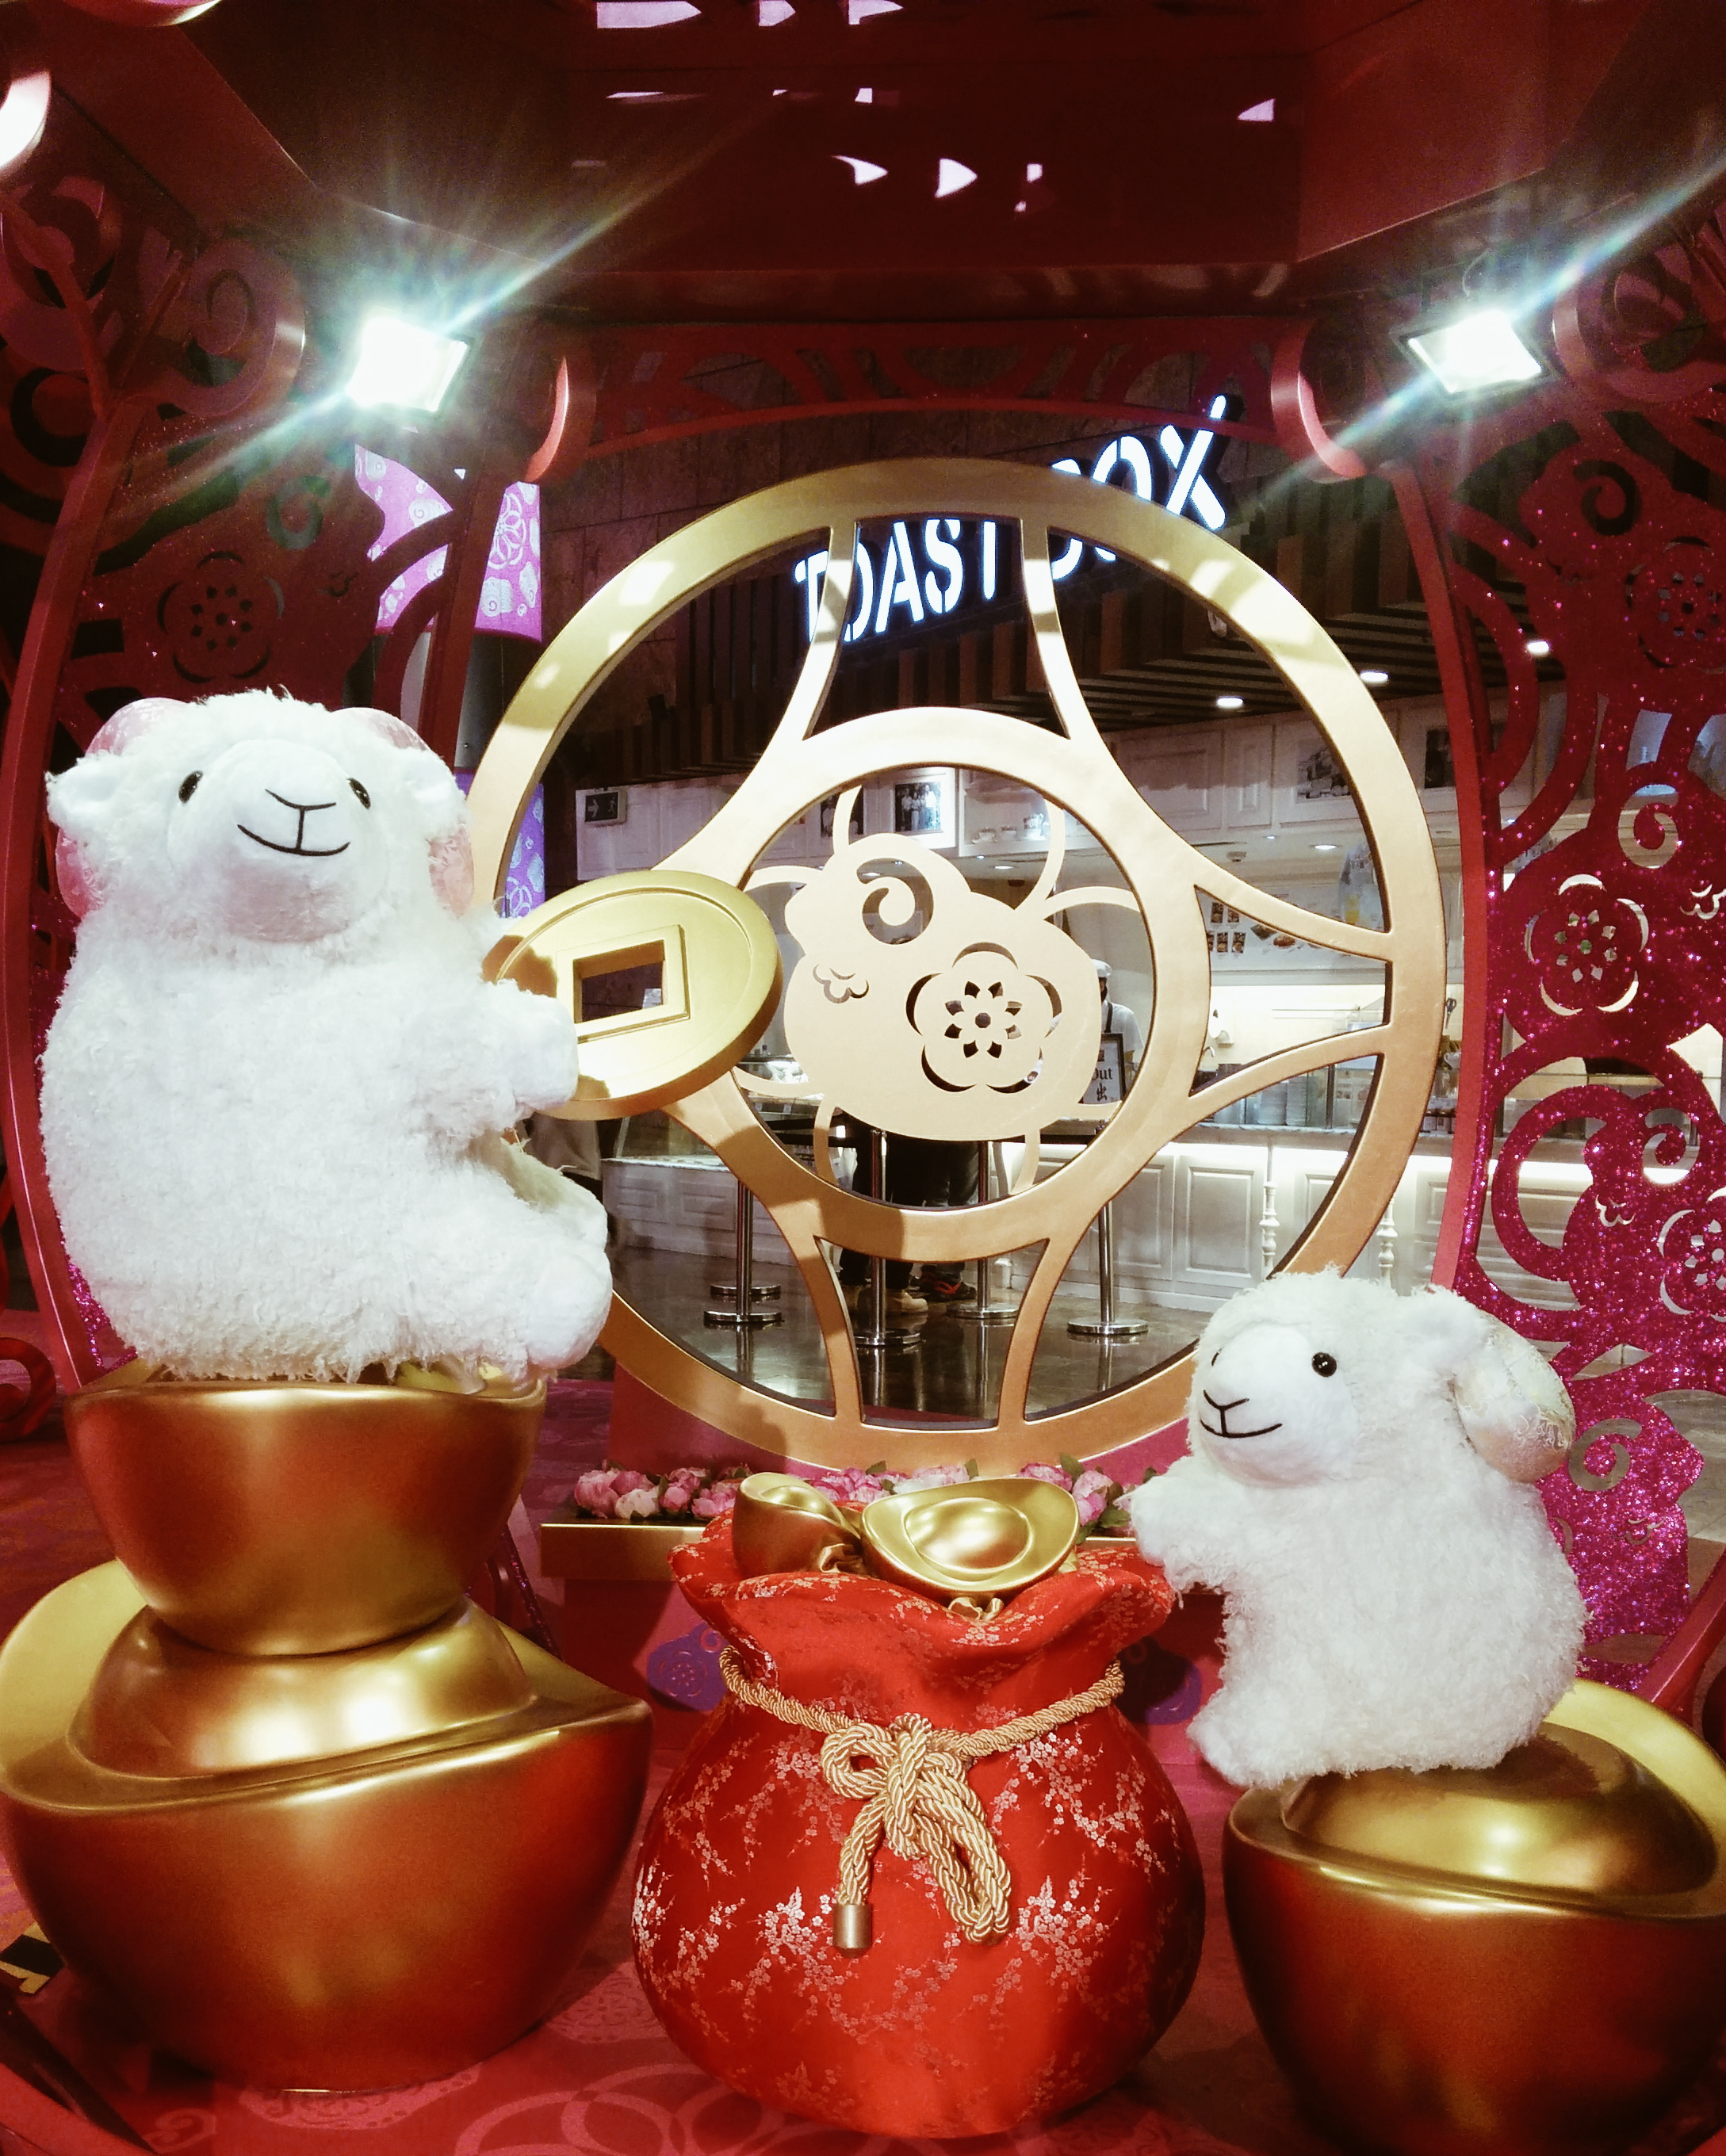 Daisybutter - Hong Kong Lifestyle and Fashion Blog: Year of the Sheep, Langham Place Hong Kong